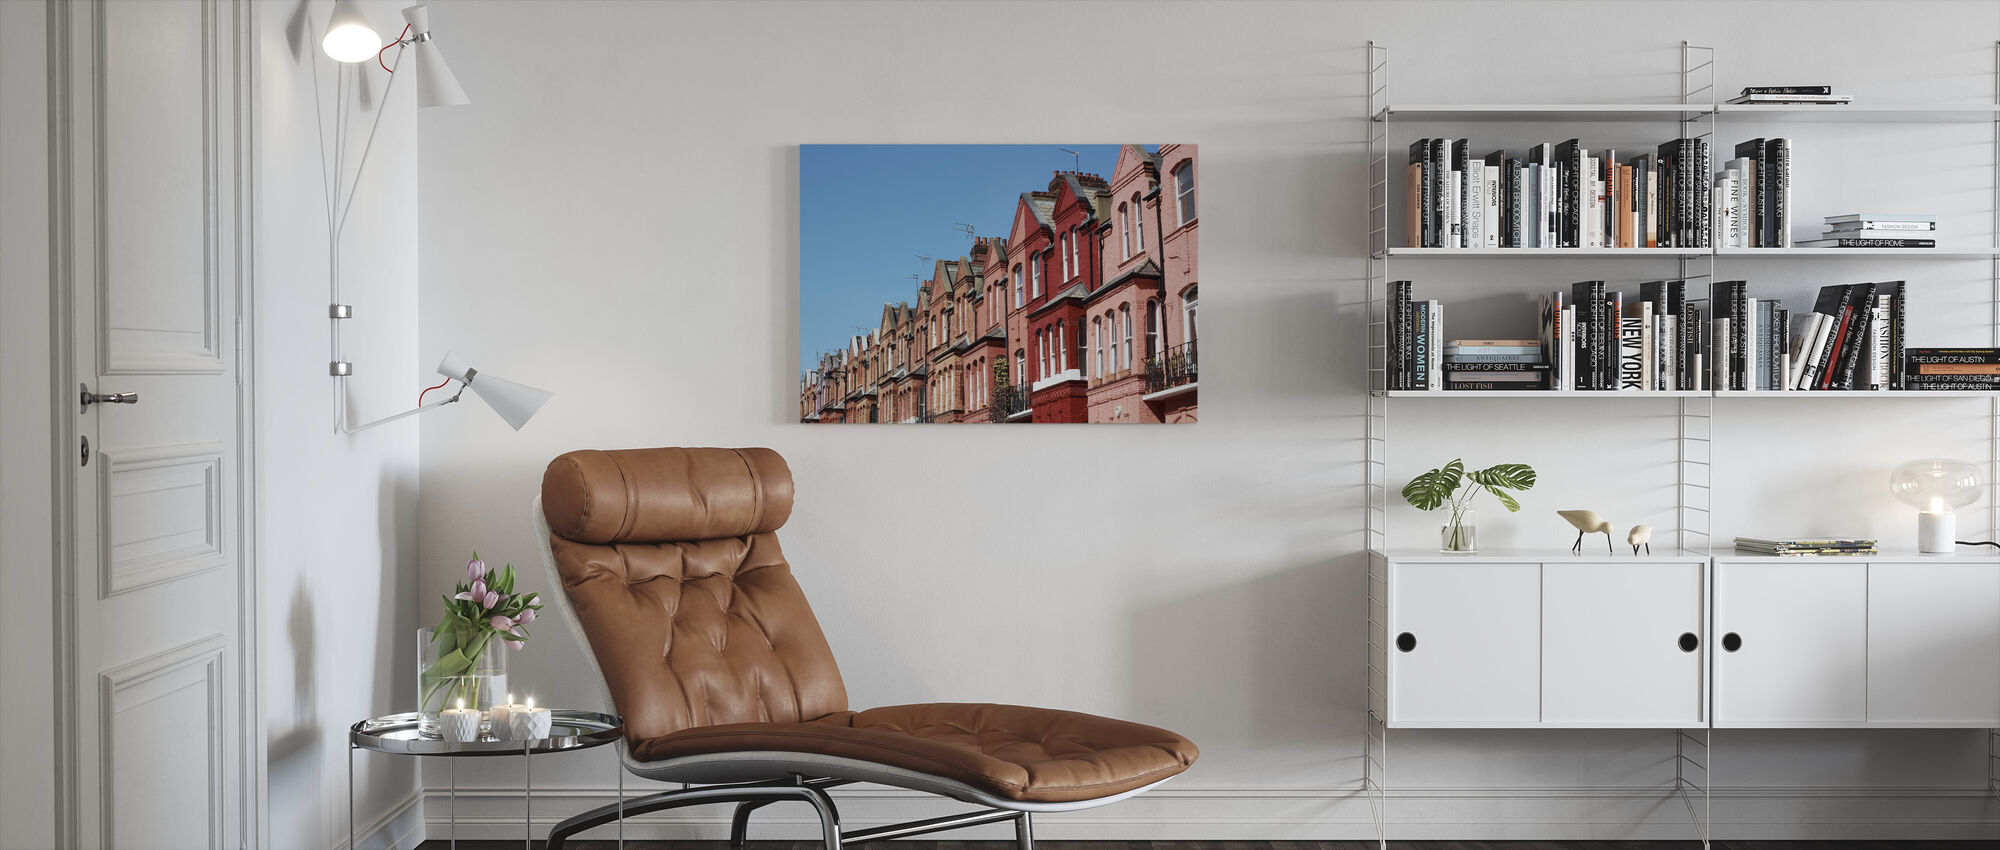 Coral Colored Houses in London - Canvas print - Living Room